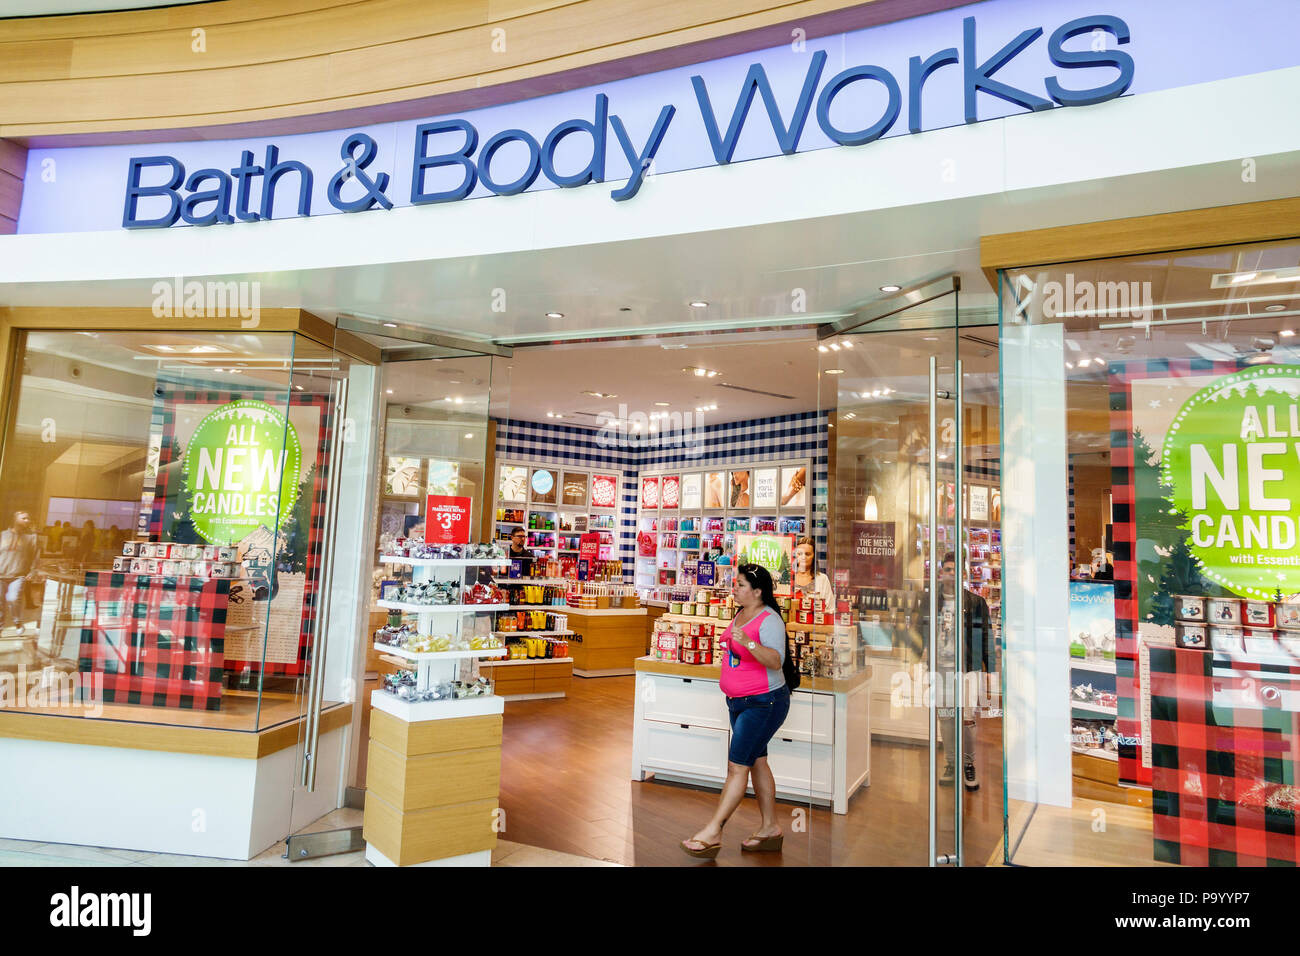 Bath And Body Works Stock Photos Amp Bath And Body Works